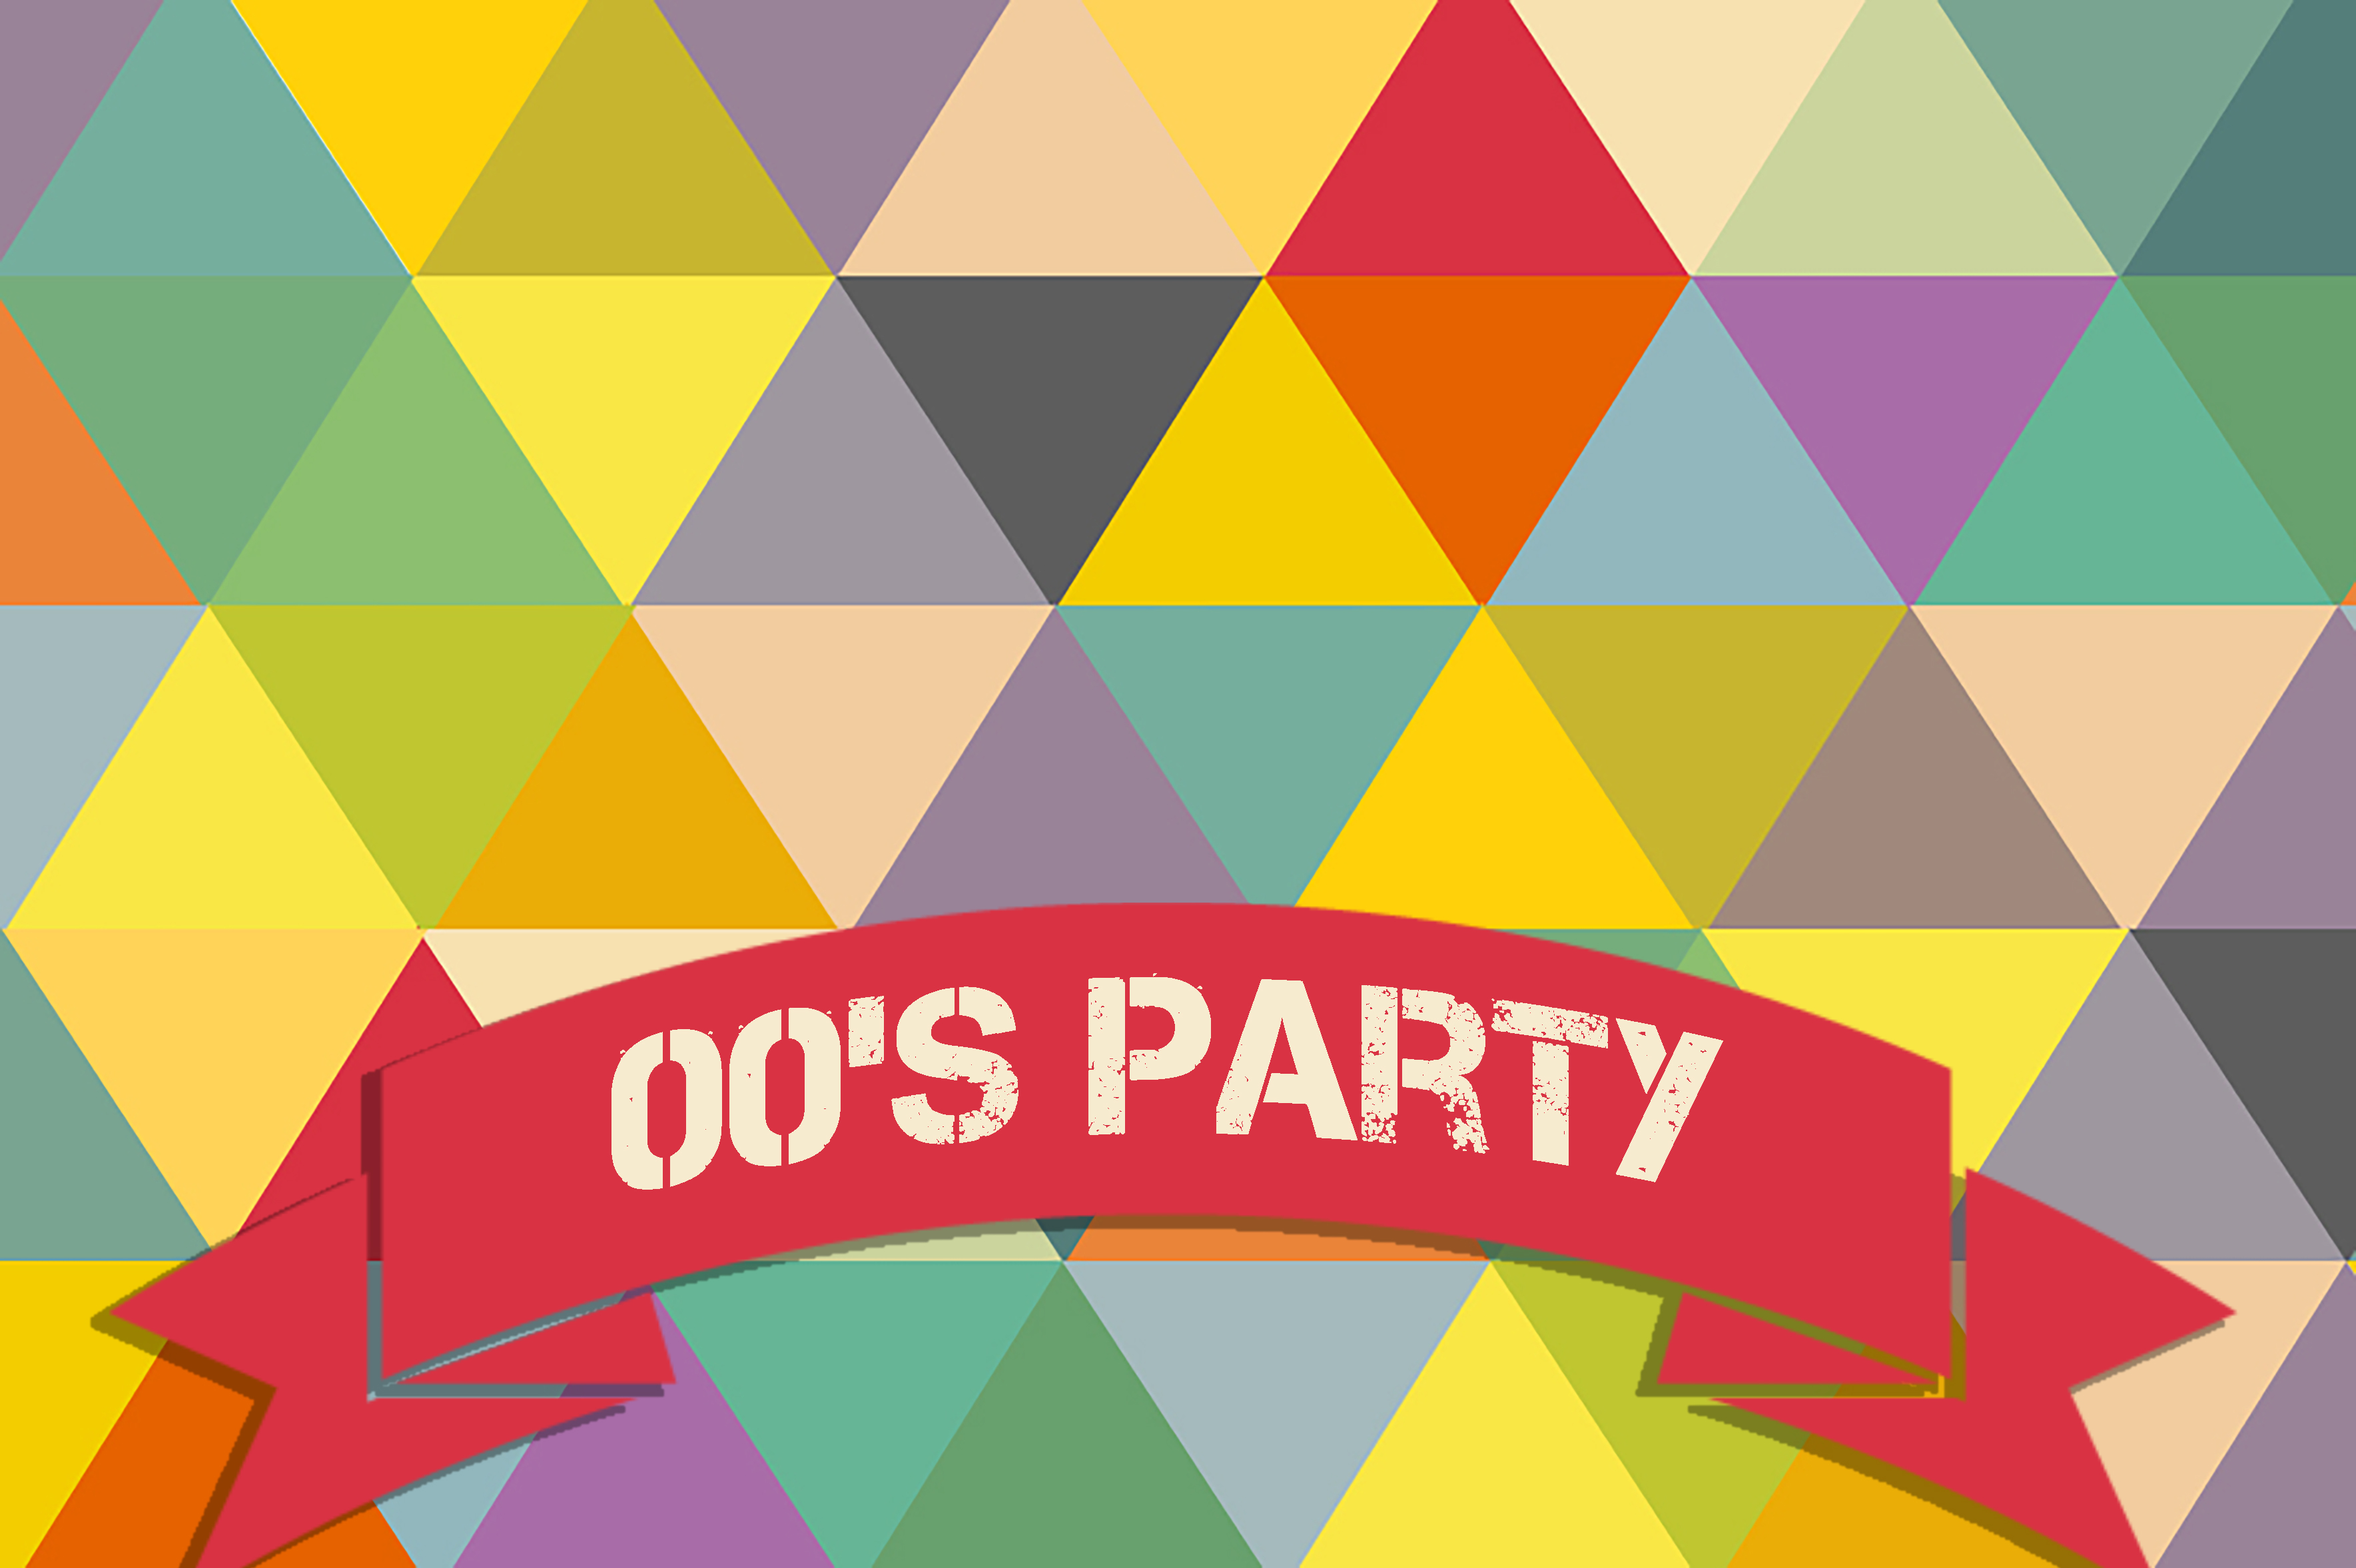 00's Party